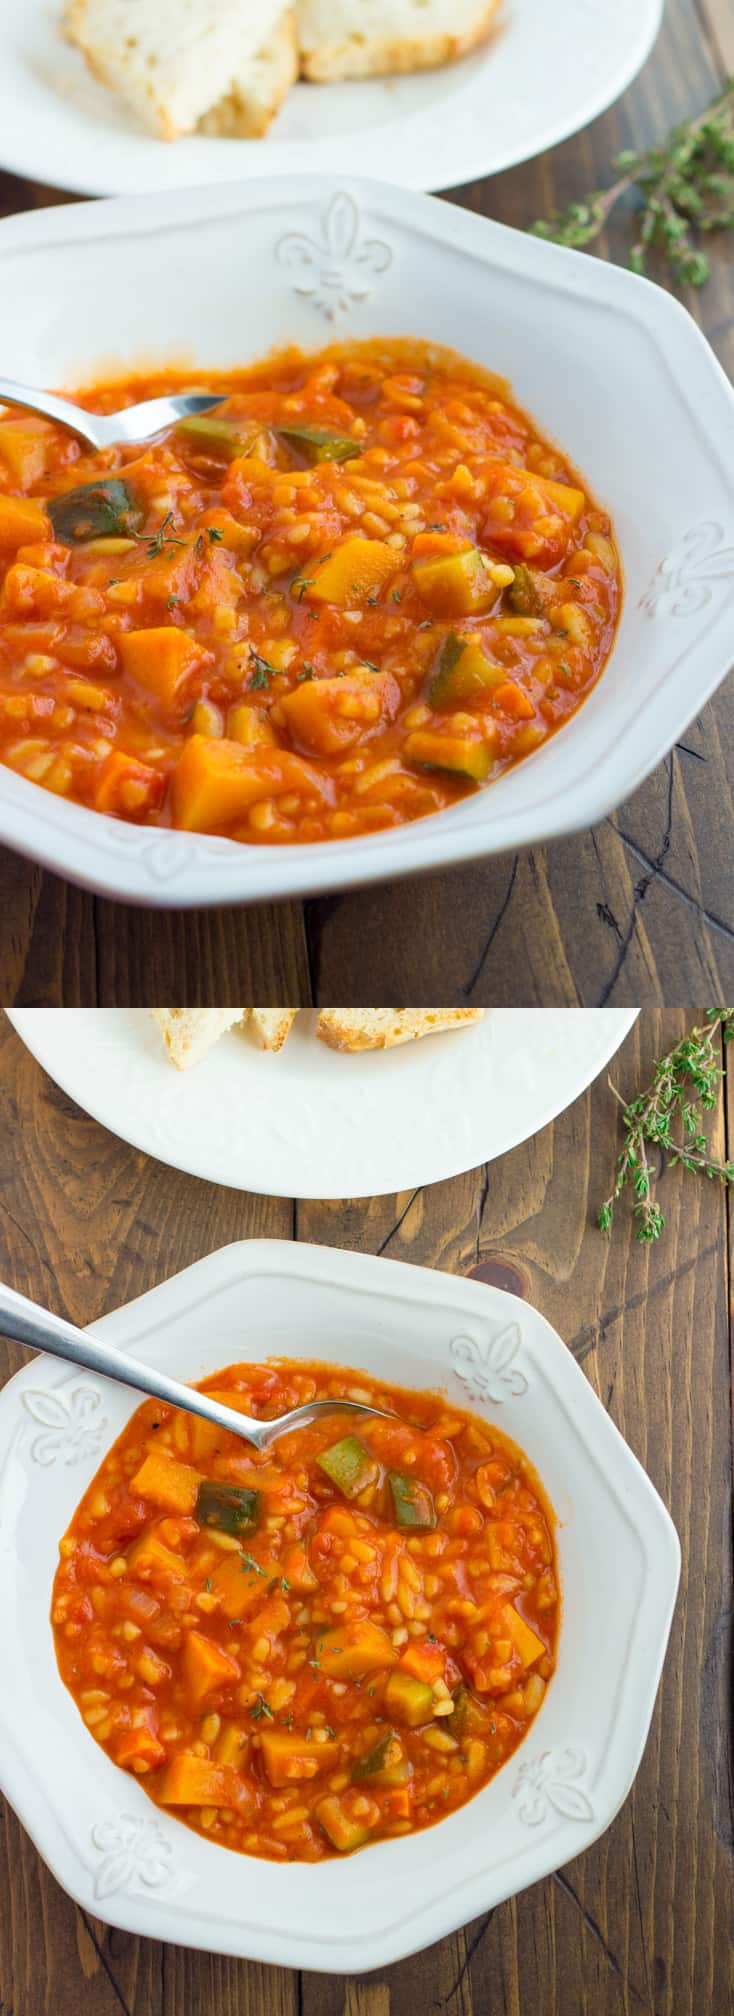 Winter Vegetable and Orzo Soup! Easy, comforting, and full of hearty vegetables. {Gluten-Free, Dairy-Free}